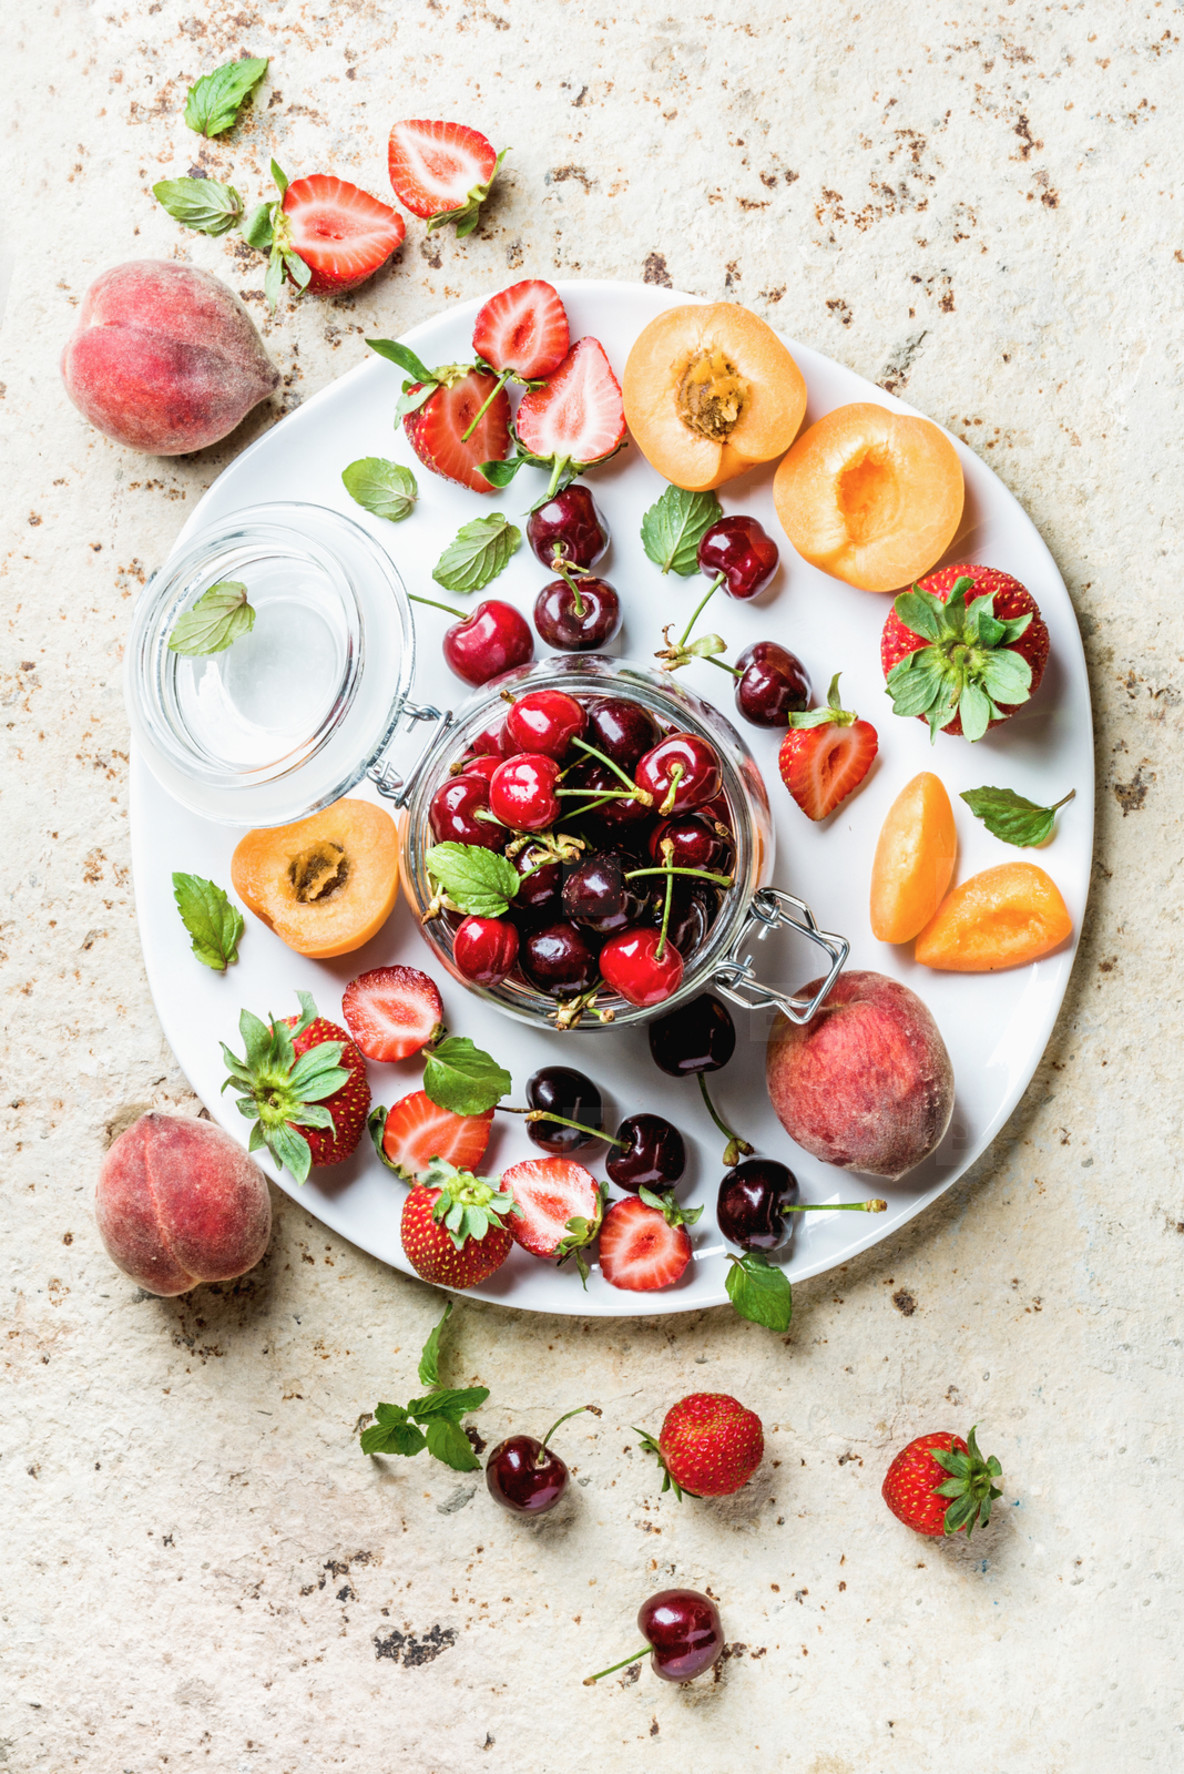 Healthy summer fruit variety  Sweet cherries  strawberries  peaches  apricots and mint leaves on white ceramic serving plate over light concrete background